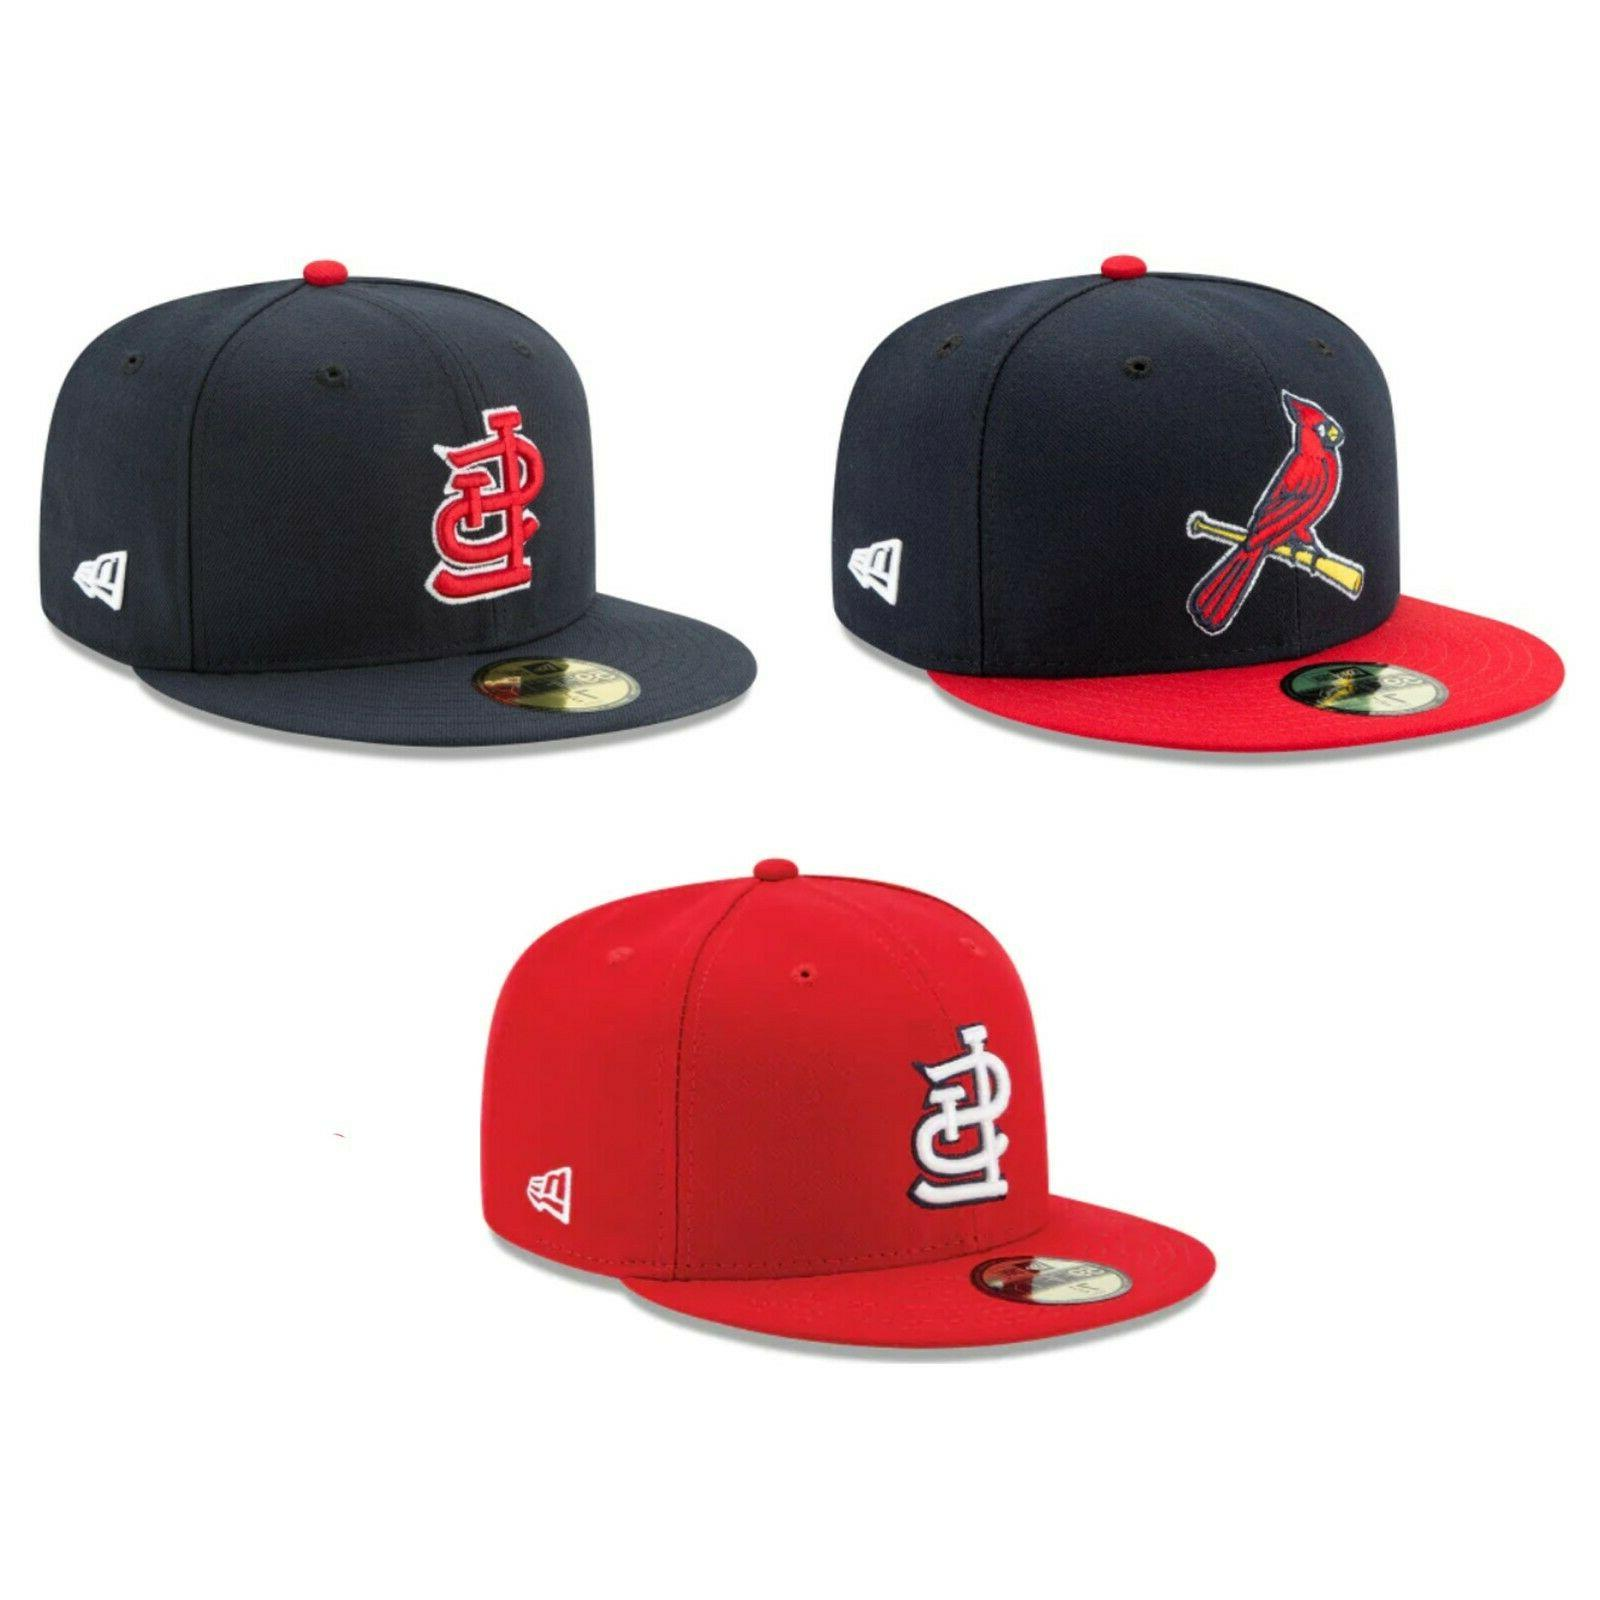 st louis cardinals stl mlb authentic 59fifty